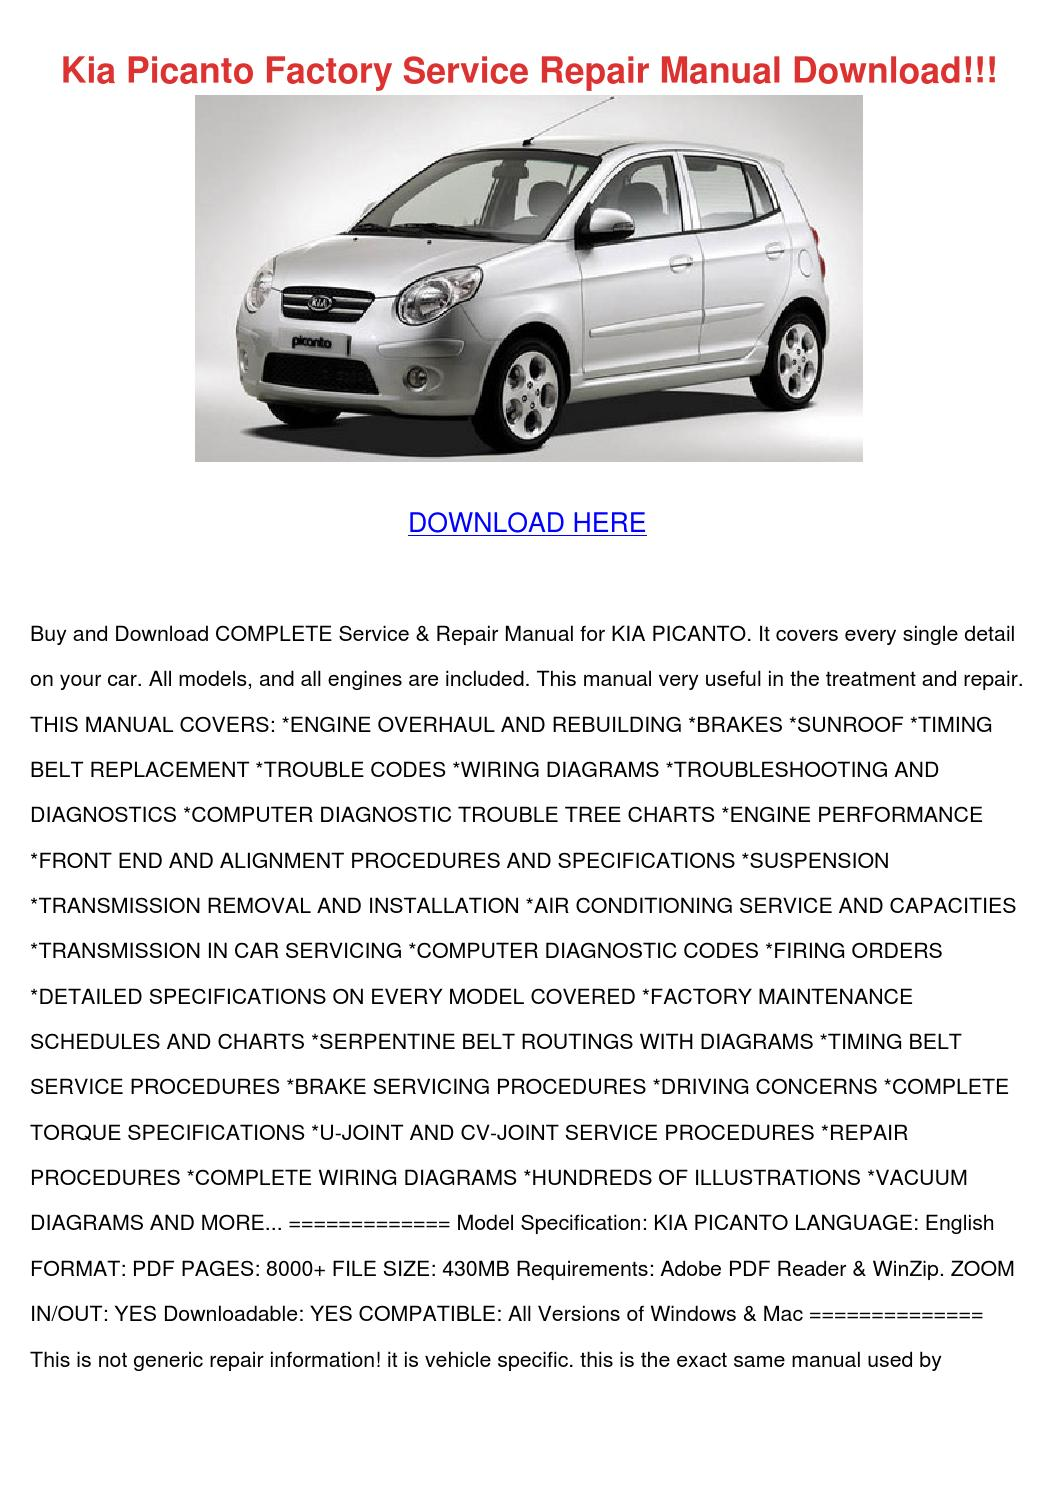 Kia picanto factory service repair manual download by Marek Paszkiewicz -  issuu